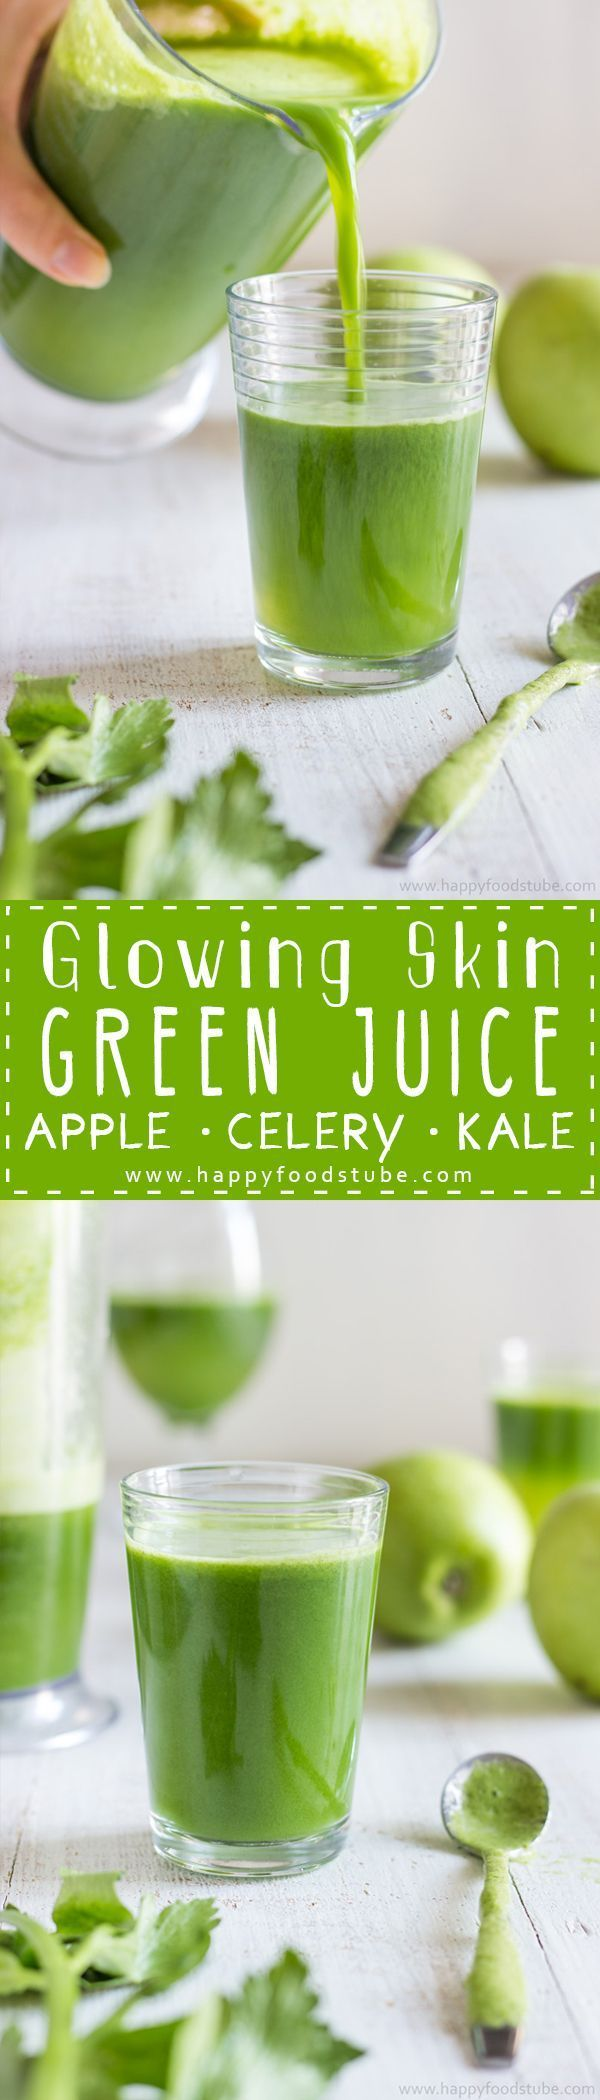 Glowing skin green juice recipe green juices juice and easy